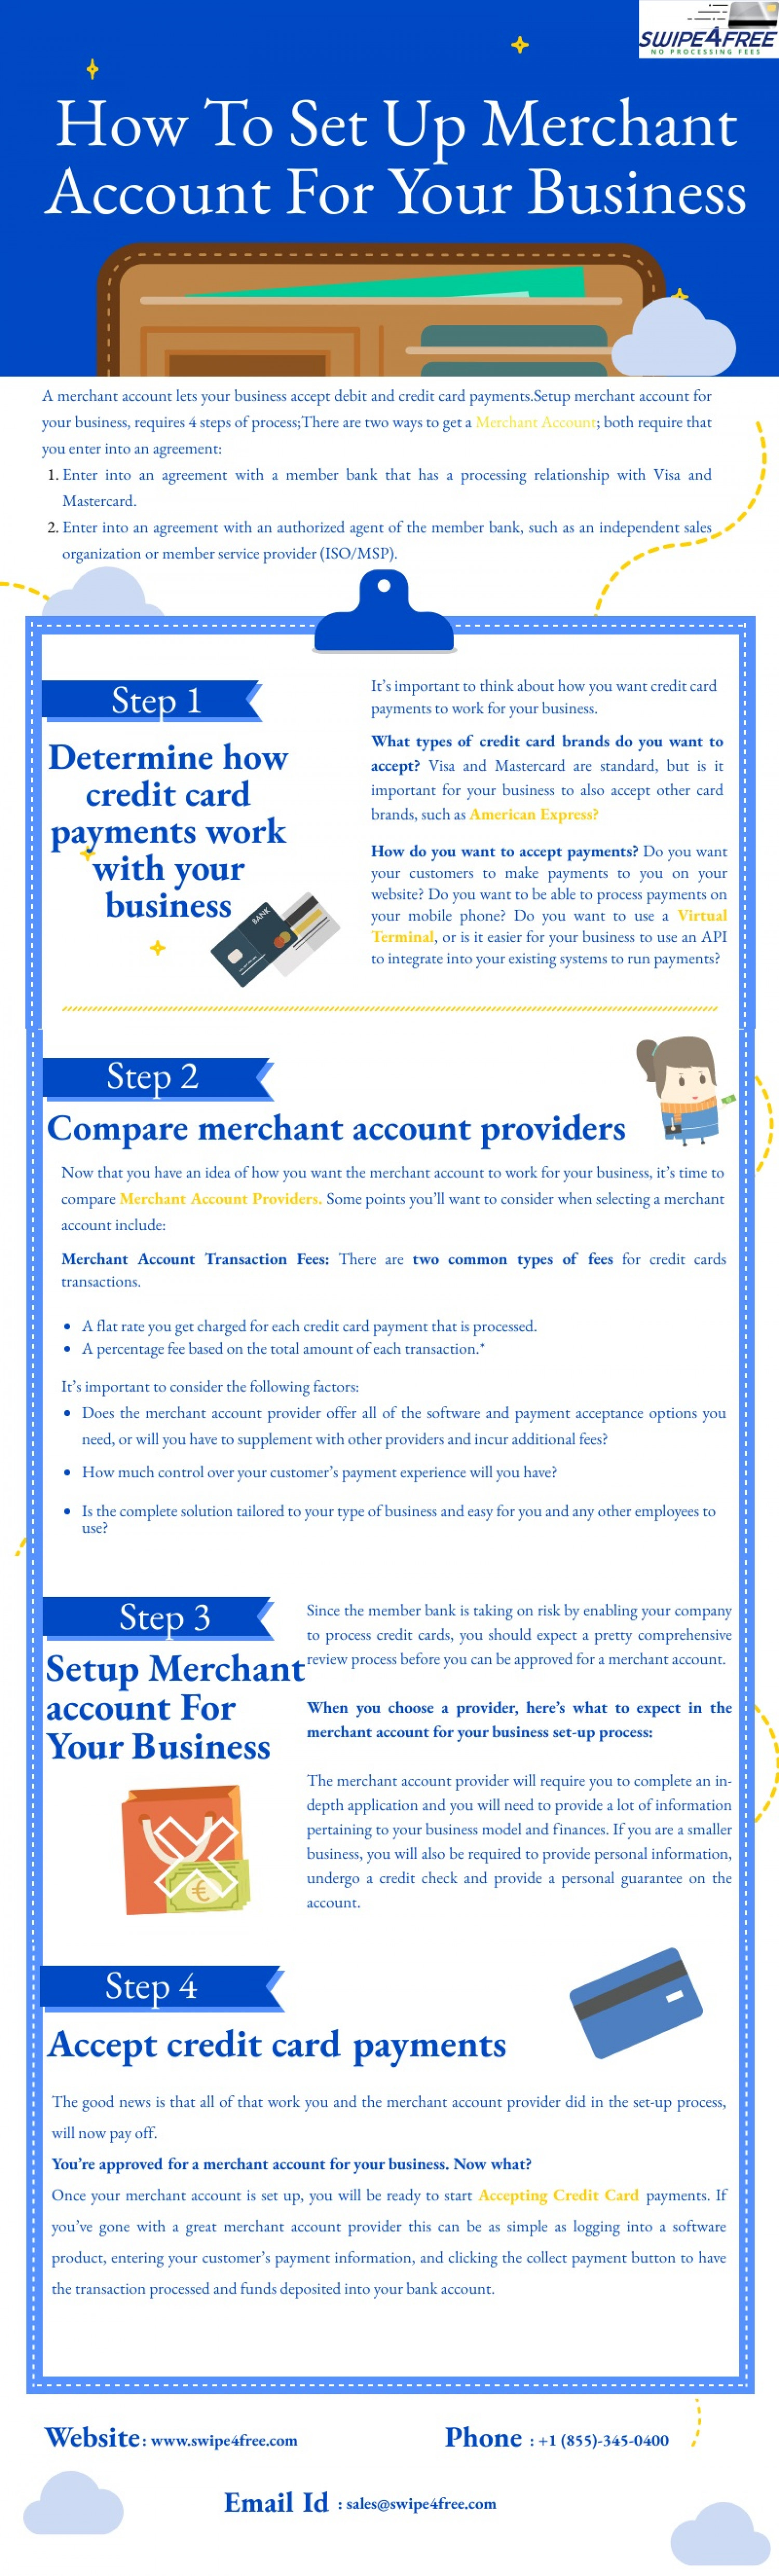 How To Set Up Merchant Account For Your Business Infographic